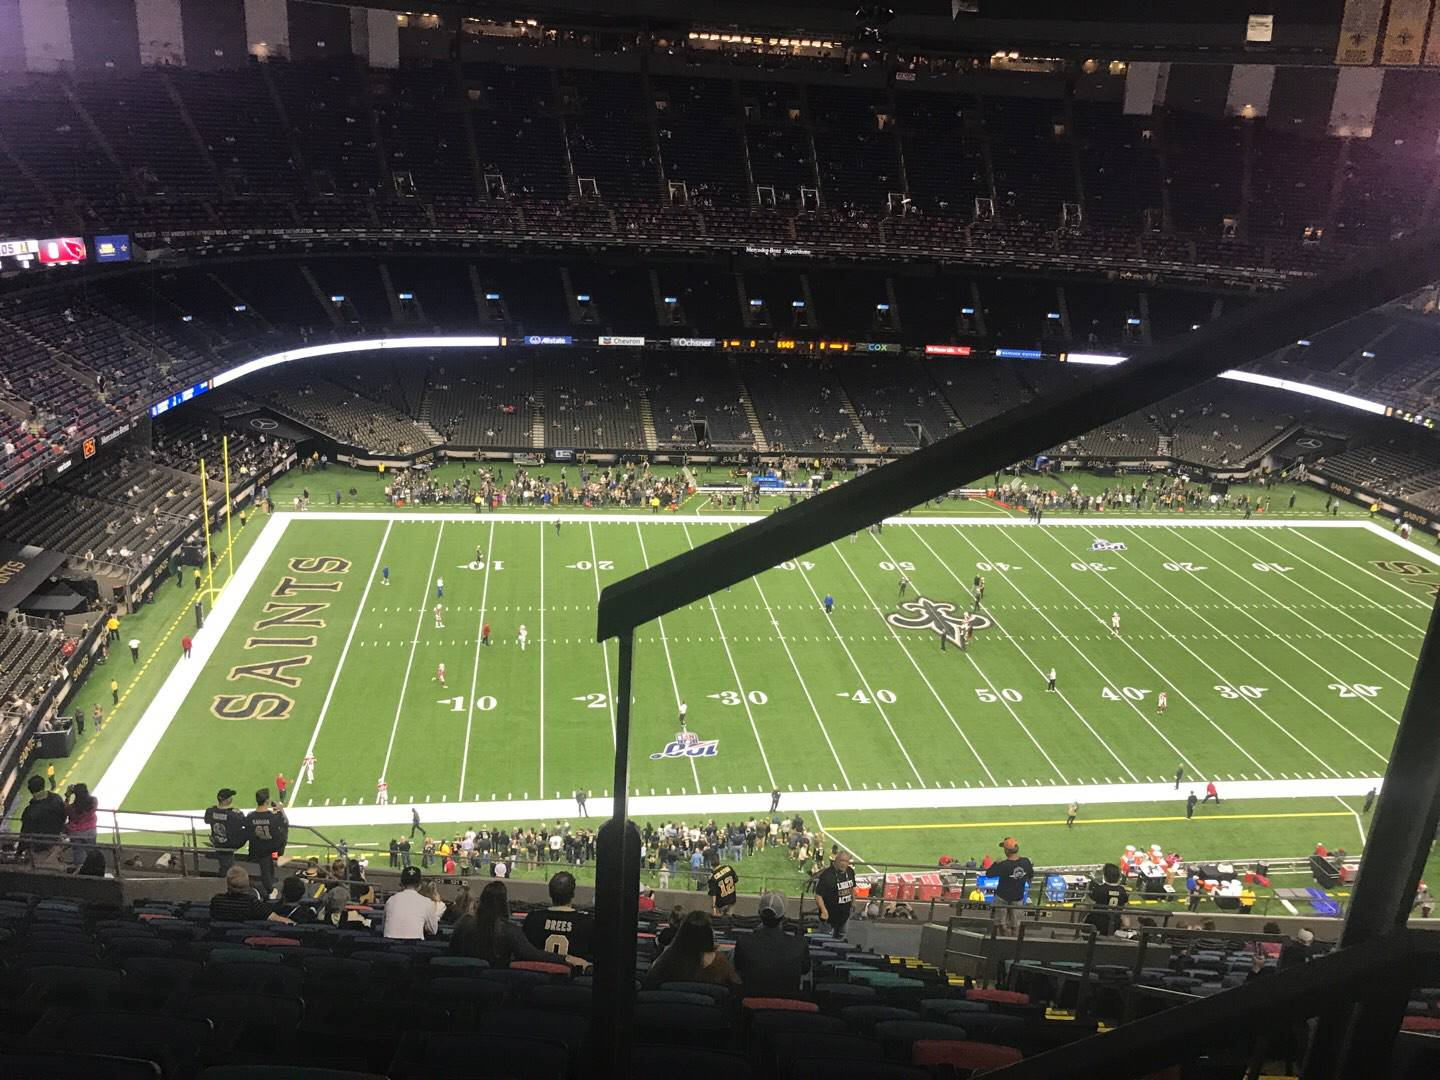 Mercedes-Benz Superdome Section 617 Row 26 Seat 5